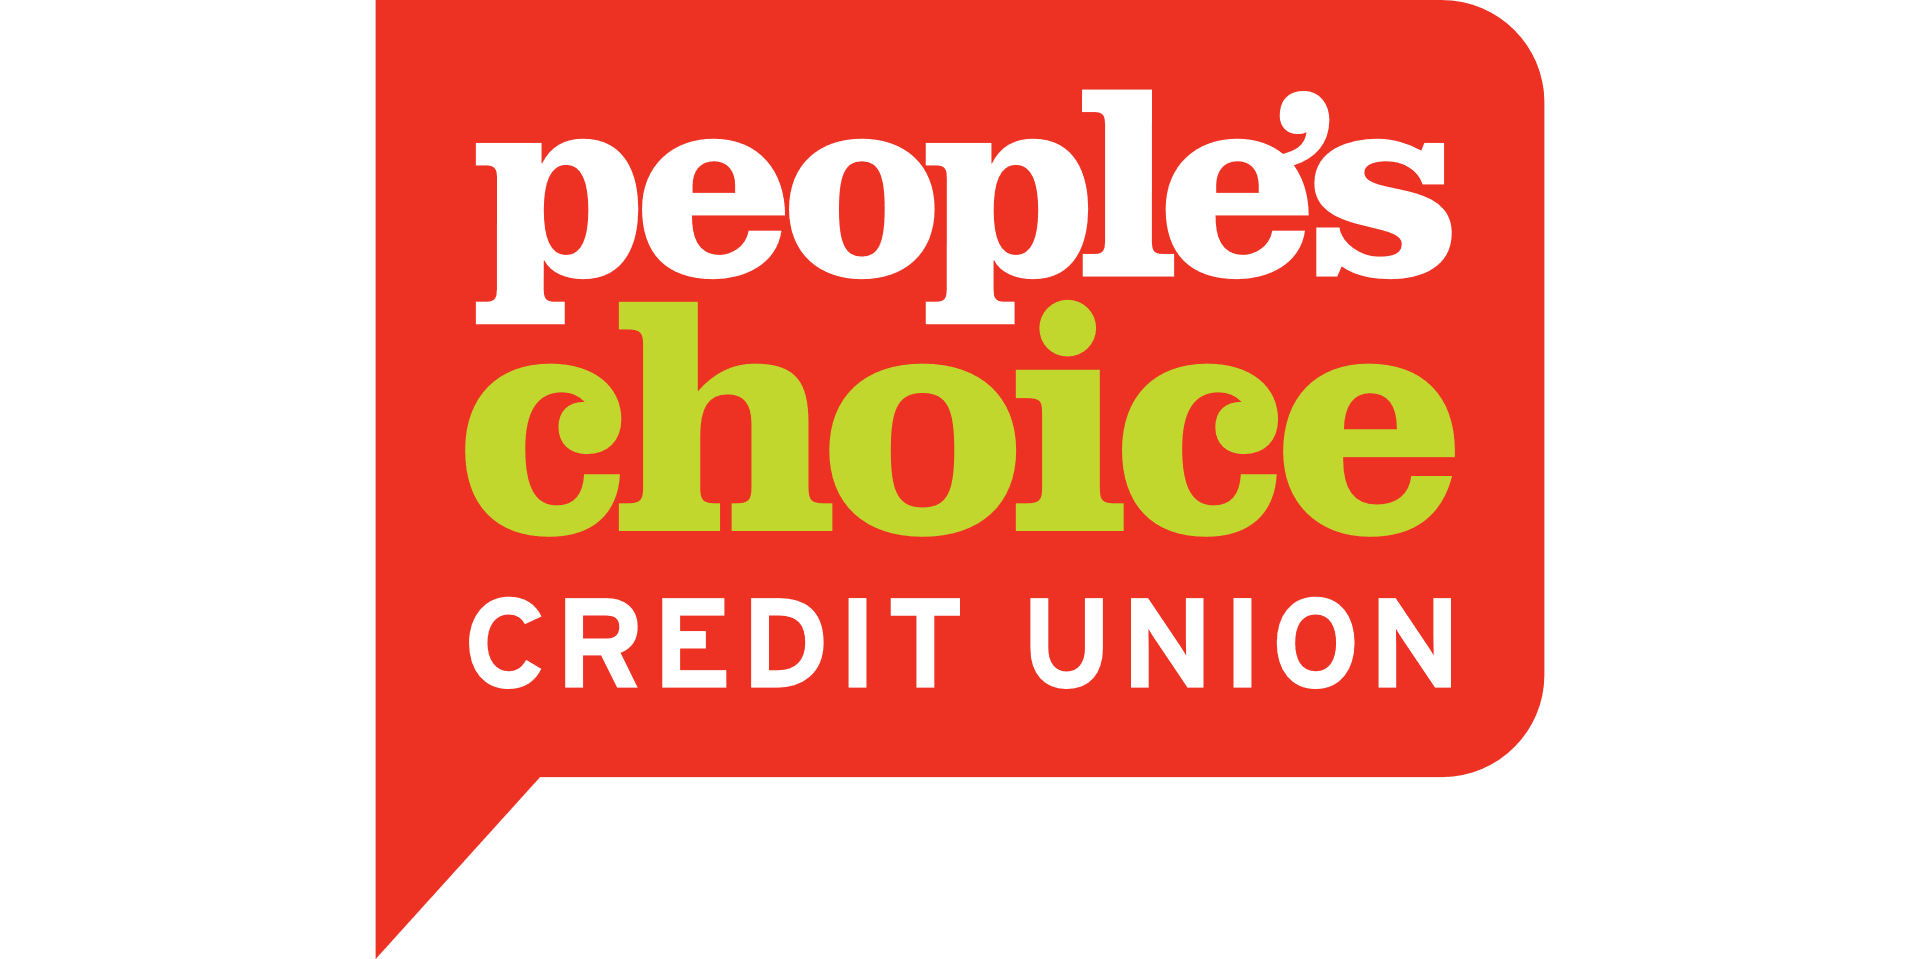 People's Choice Credit Union - Maribyrnong, VIC 3032 - (01) 3118 1182 | ShowMeLocal.com